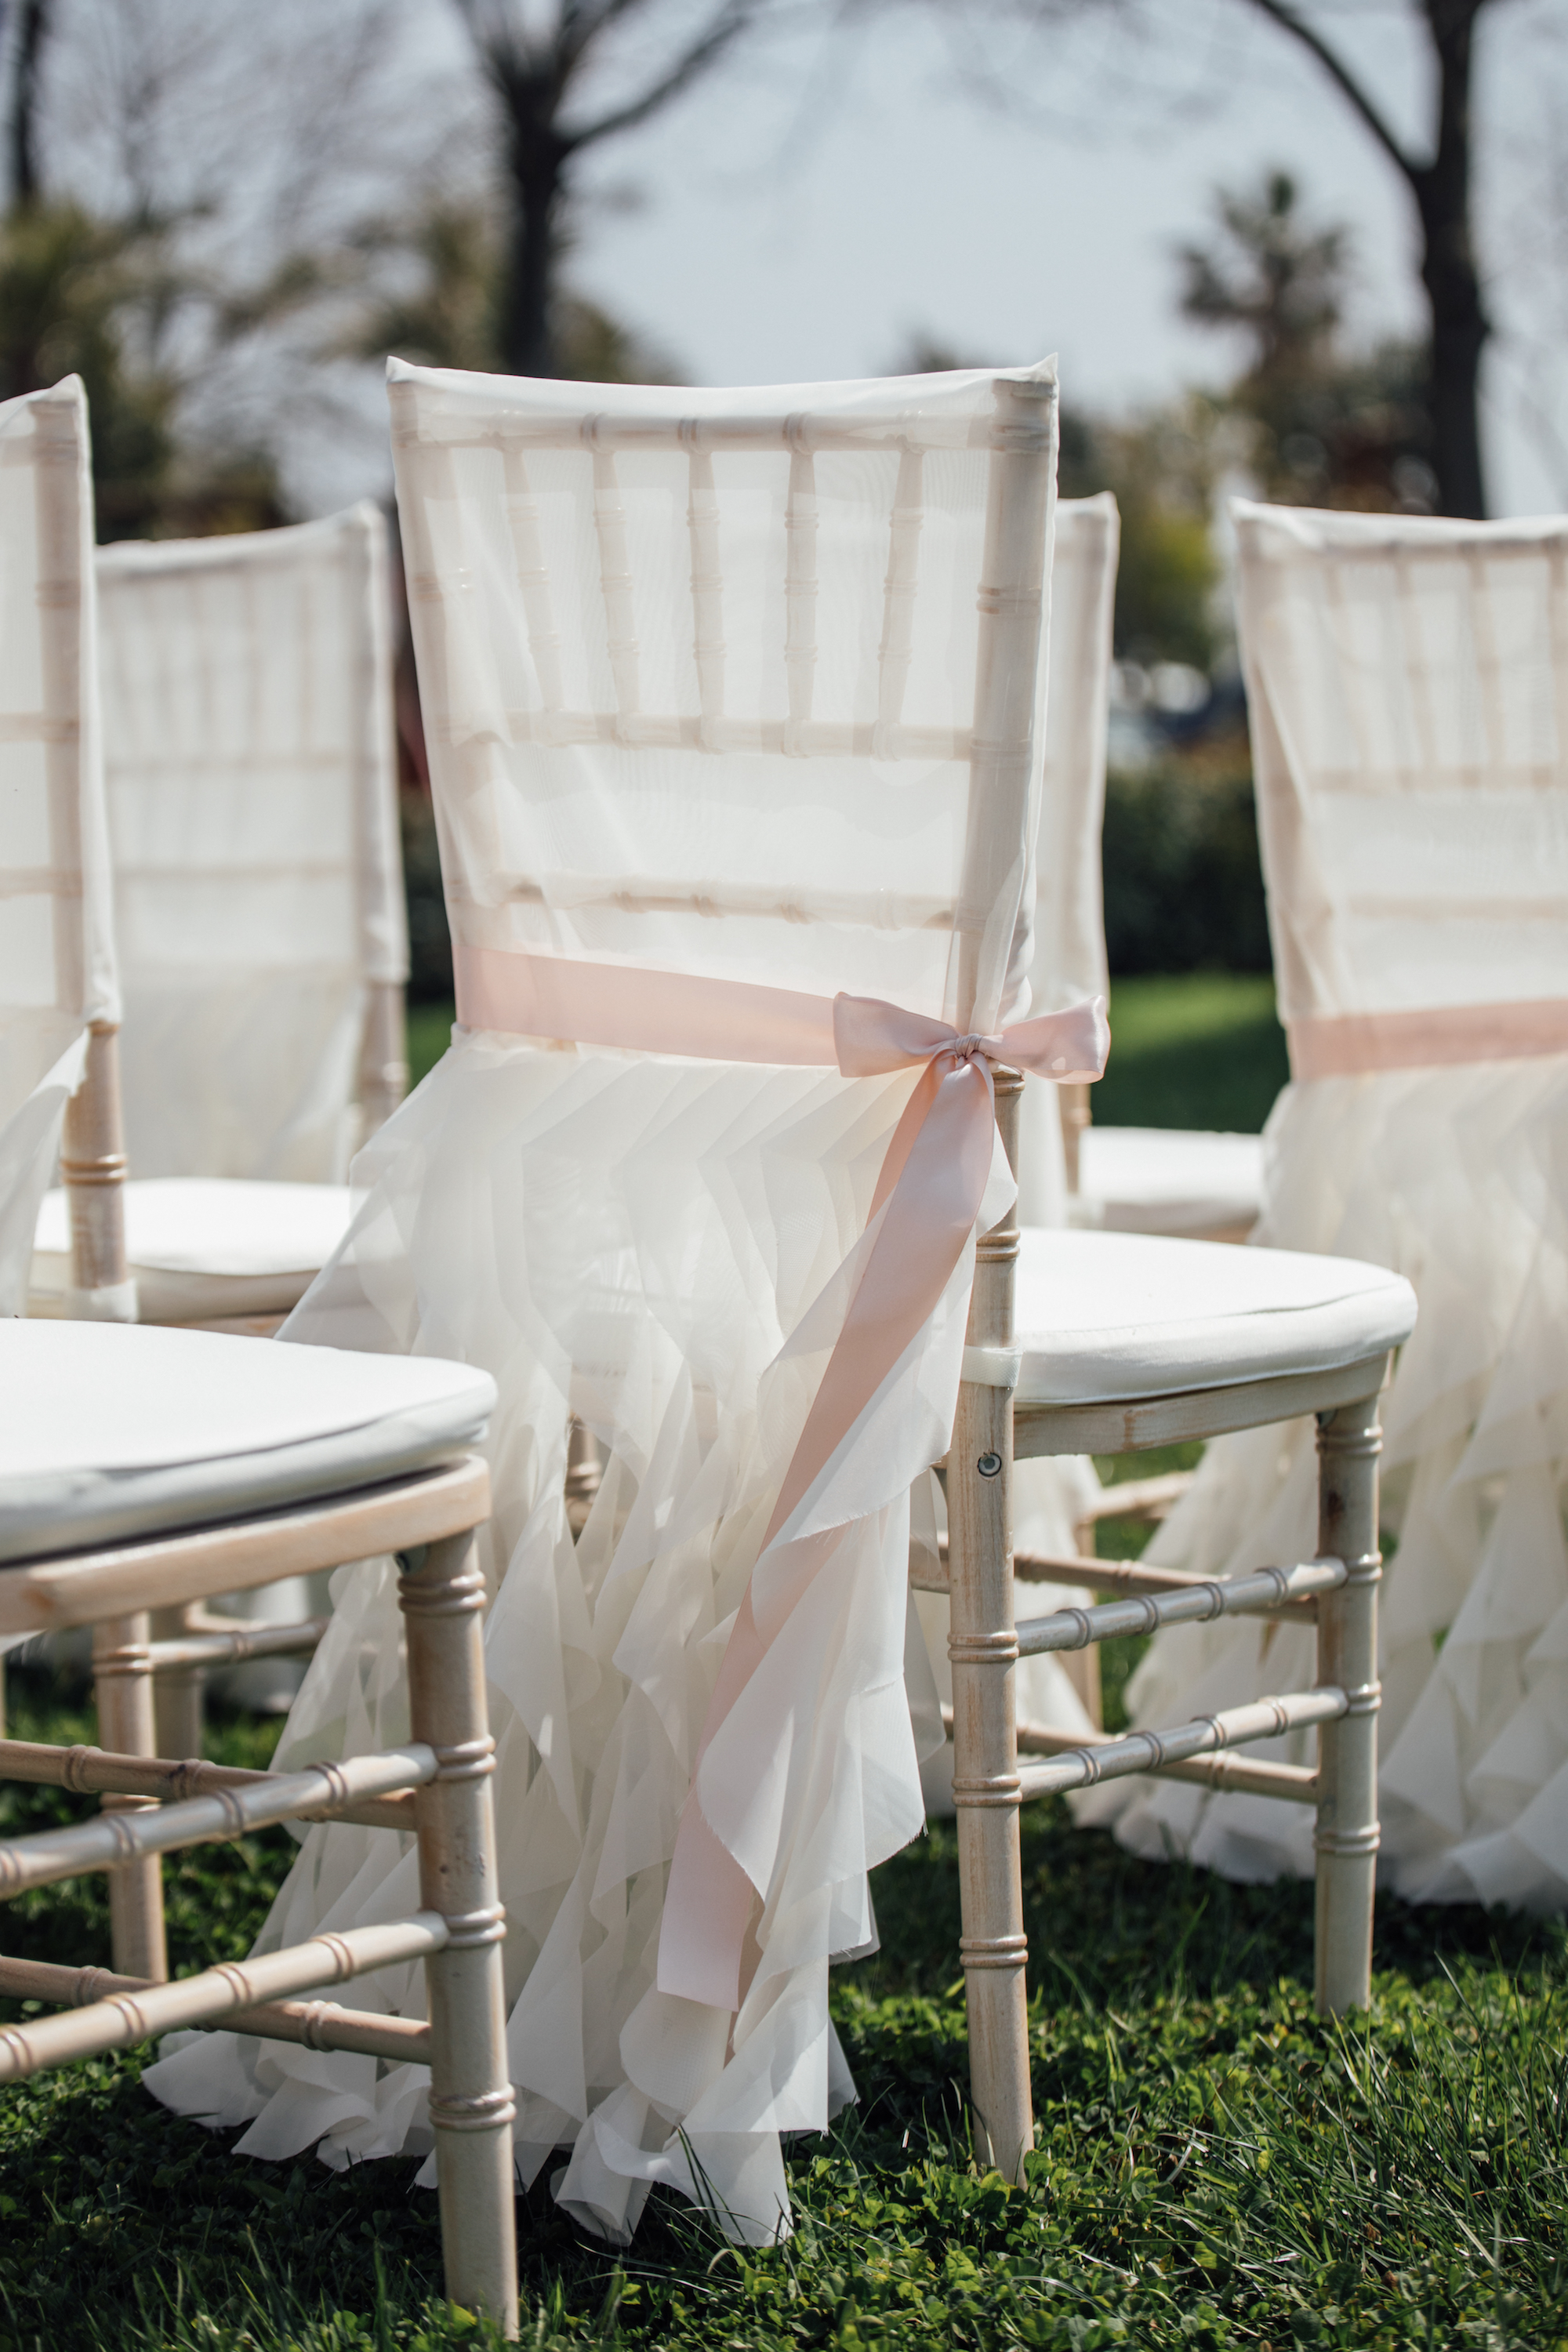 Pretty ruffled chair covers tied with ribbon from a Lemon Yellow Garden Wedding Styled Shoot in Rome Italy - by Jess Palatucci Photography - as seen on www.BrendasWeddingBlog.com